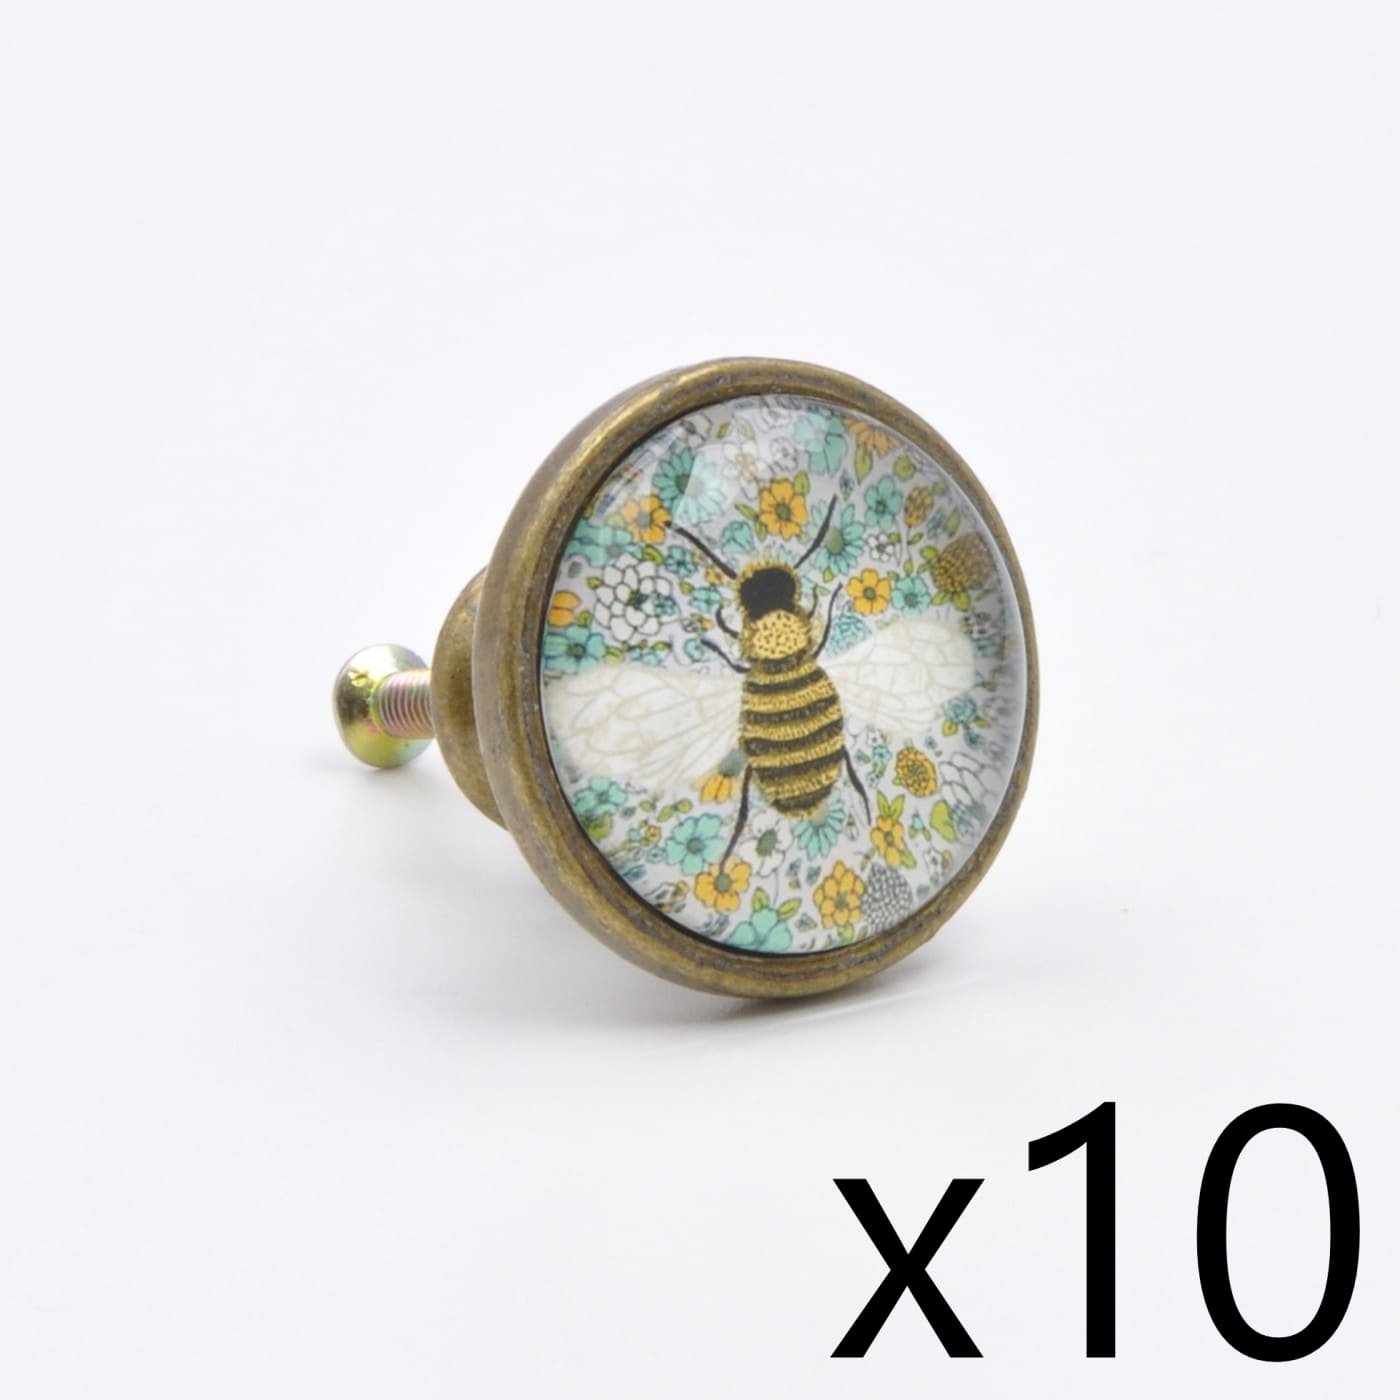 (10 Piece Set of) Vintage Bee Print Knob, Pull, Handle, for Cupboards, Doors, Cabinets, Drawers, Furniture & Kitchens (Includes Hardware for Fitting) 3.37 cm diameter 1.75 cm rod length abodent.com